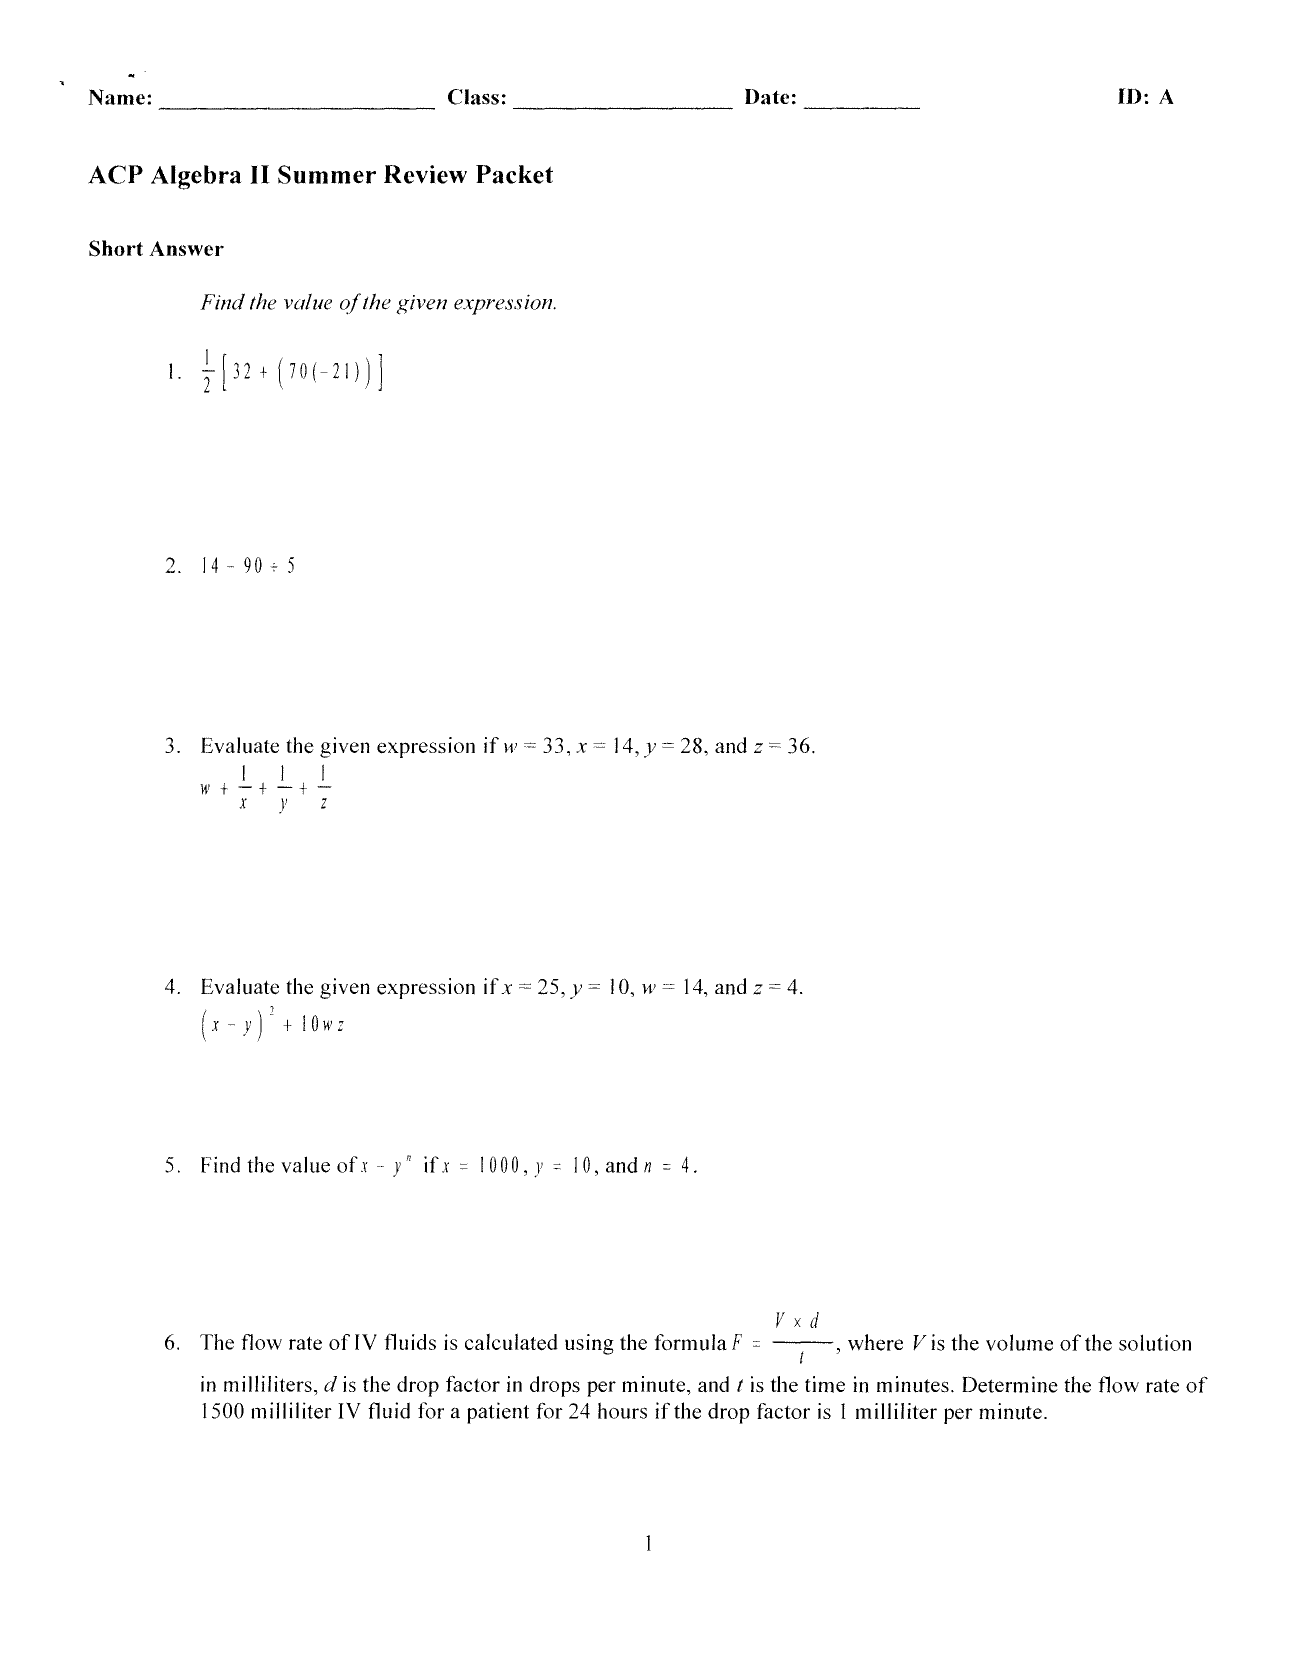 ACP Algebra II Summer Review Packet